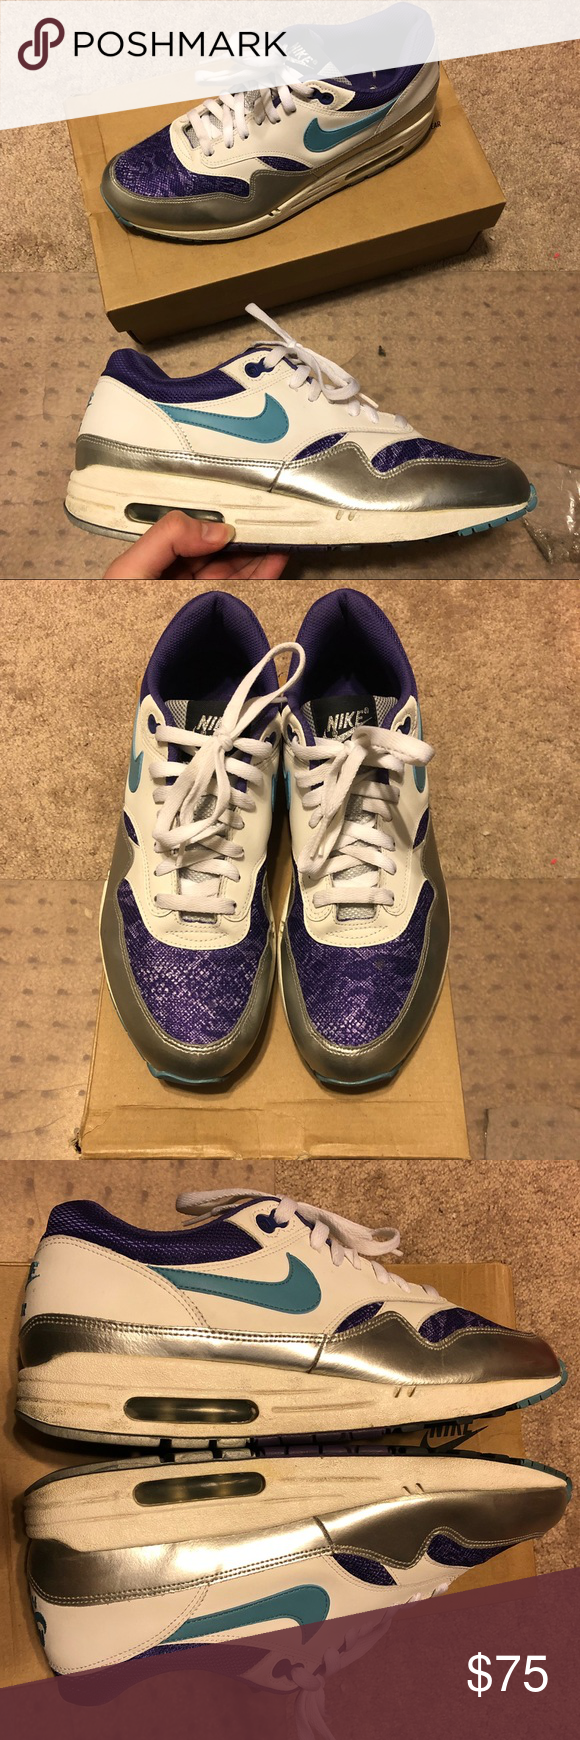 cheap nike air max 1 purple silver 7d070 7a20e